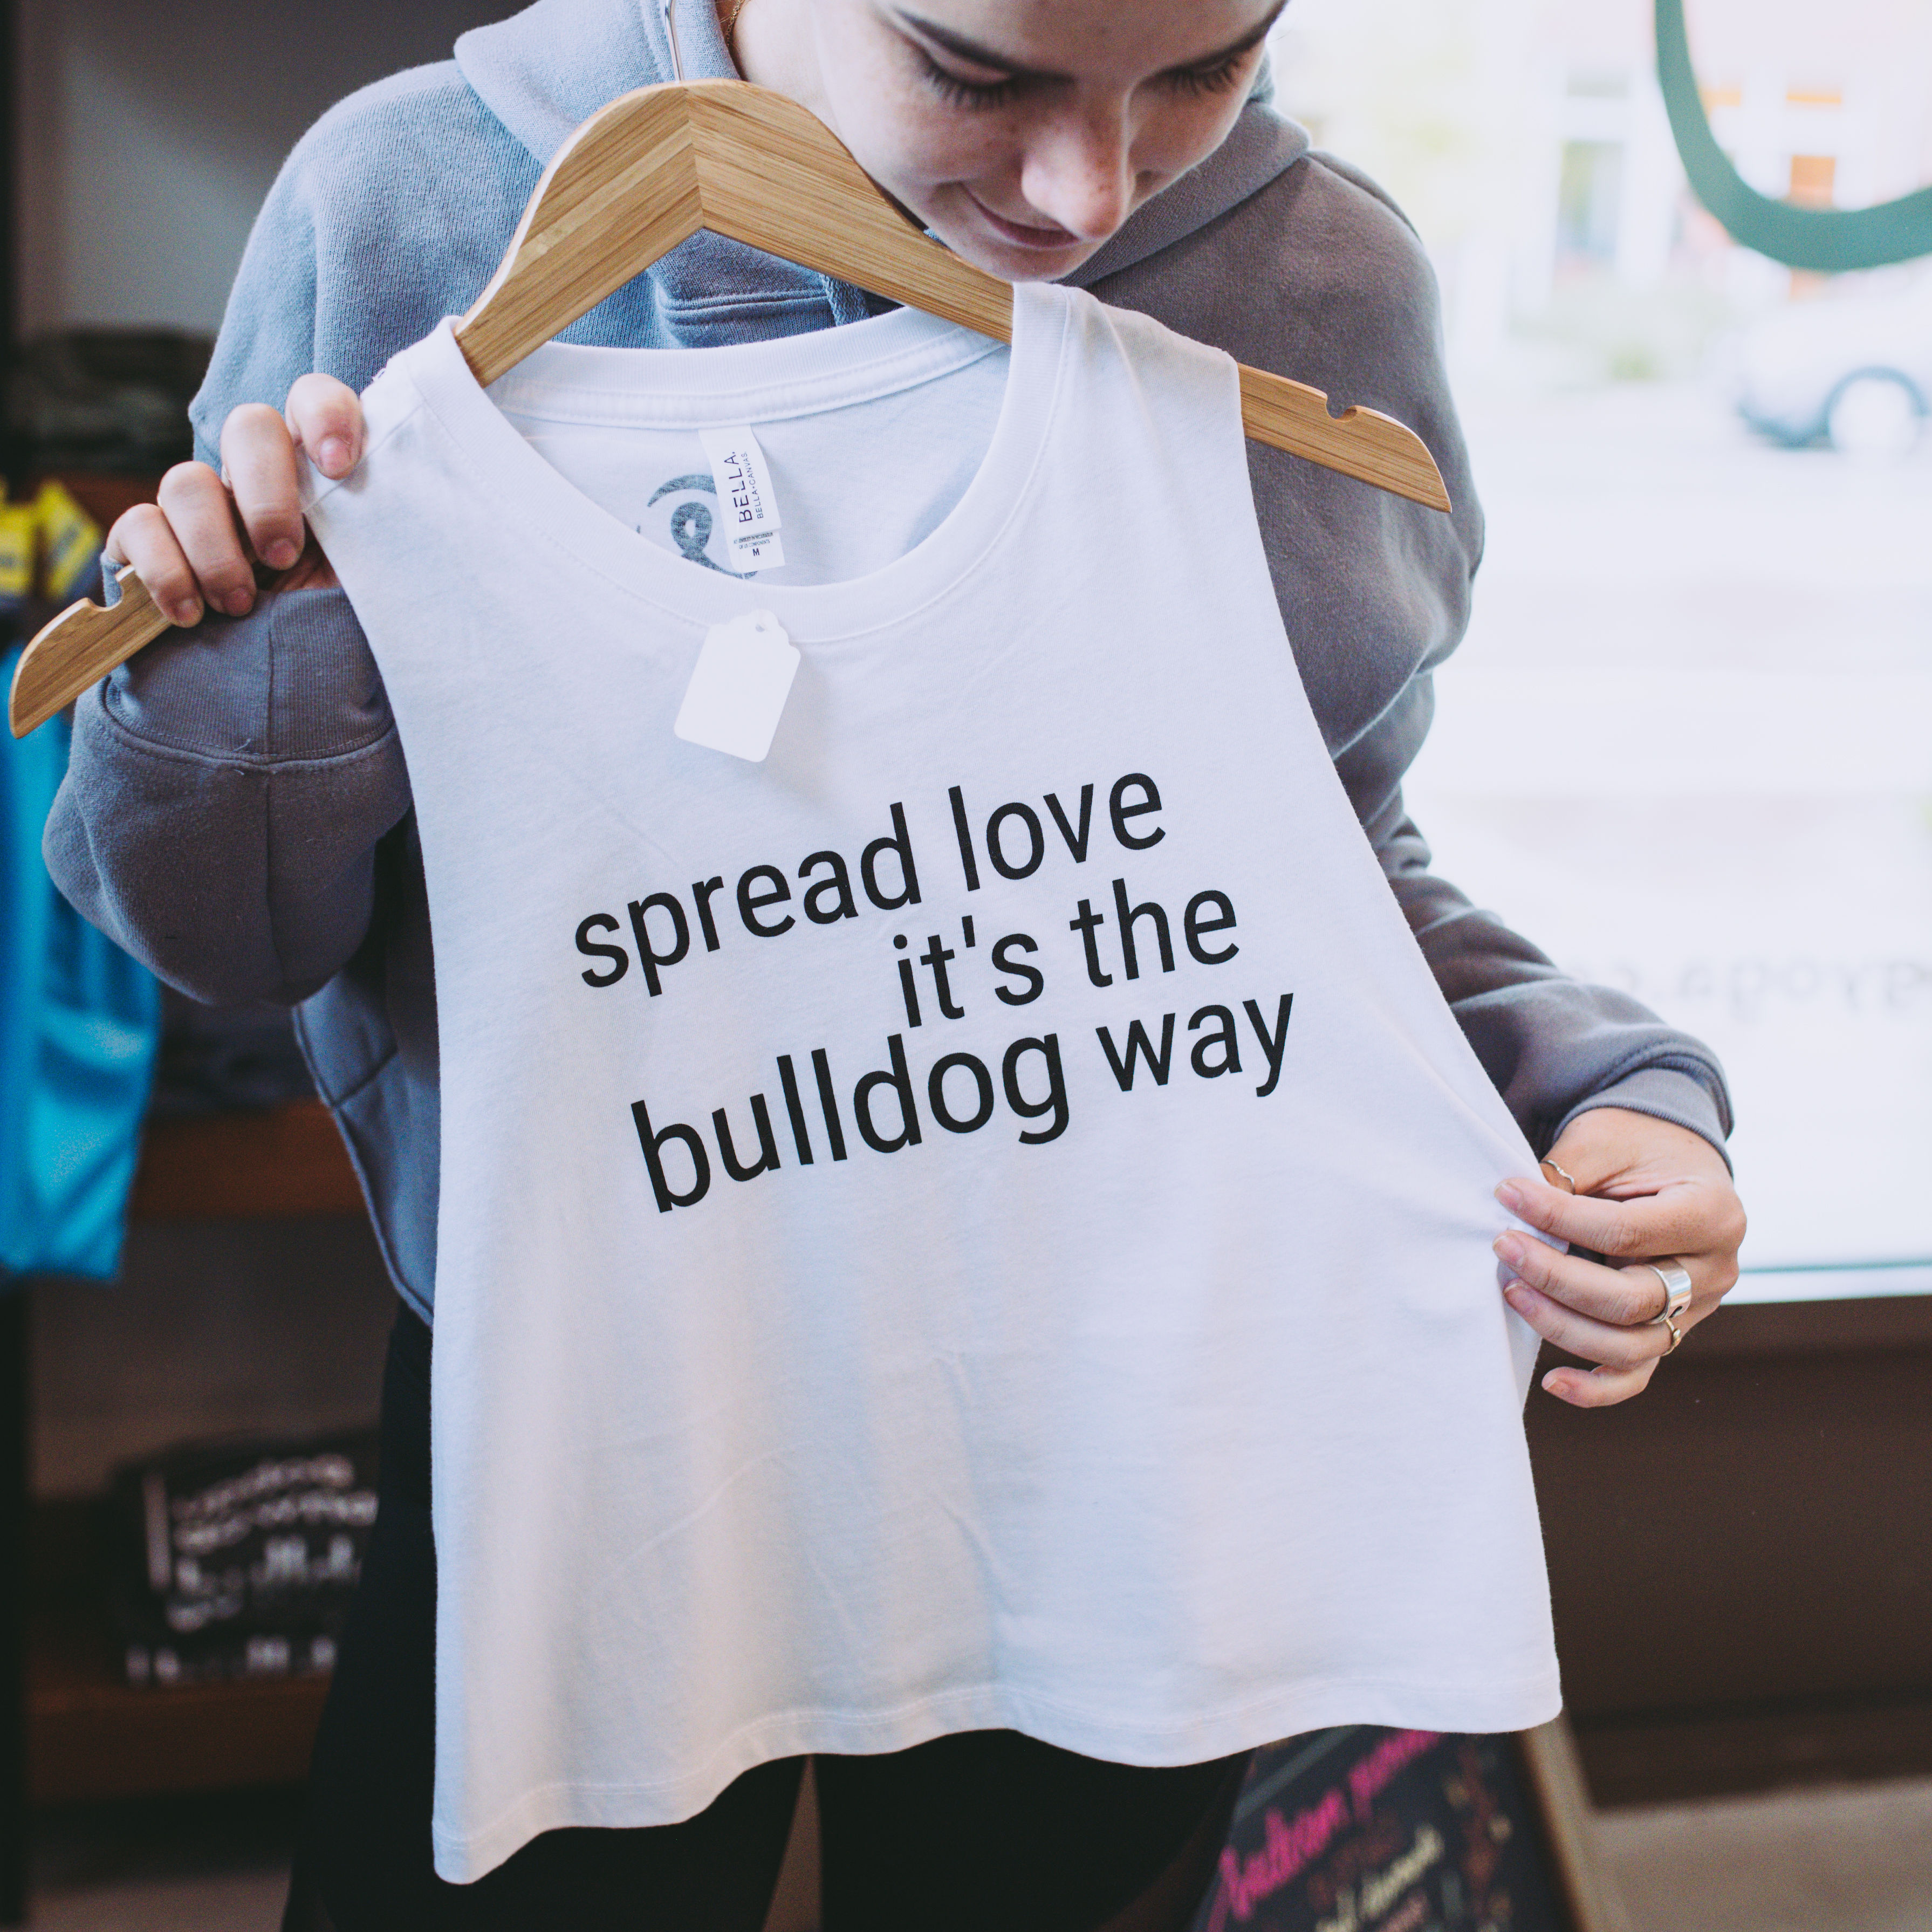 bulldog gives back: Boulder Crew on a Mission